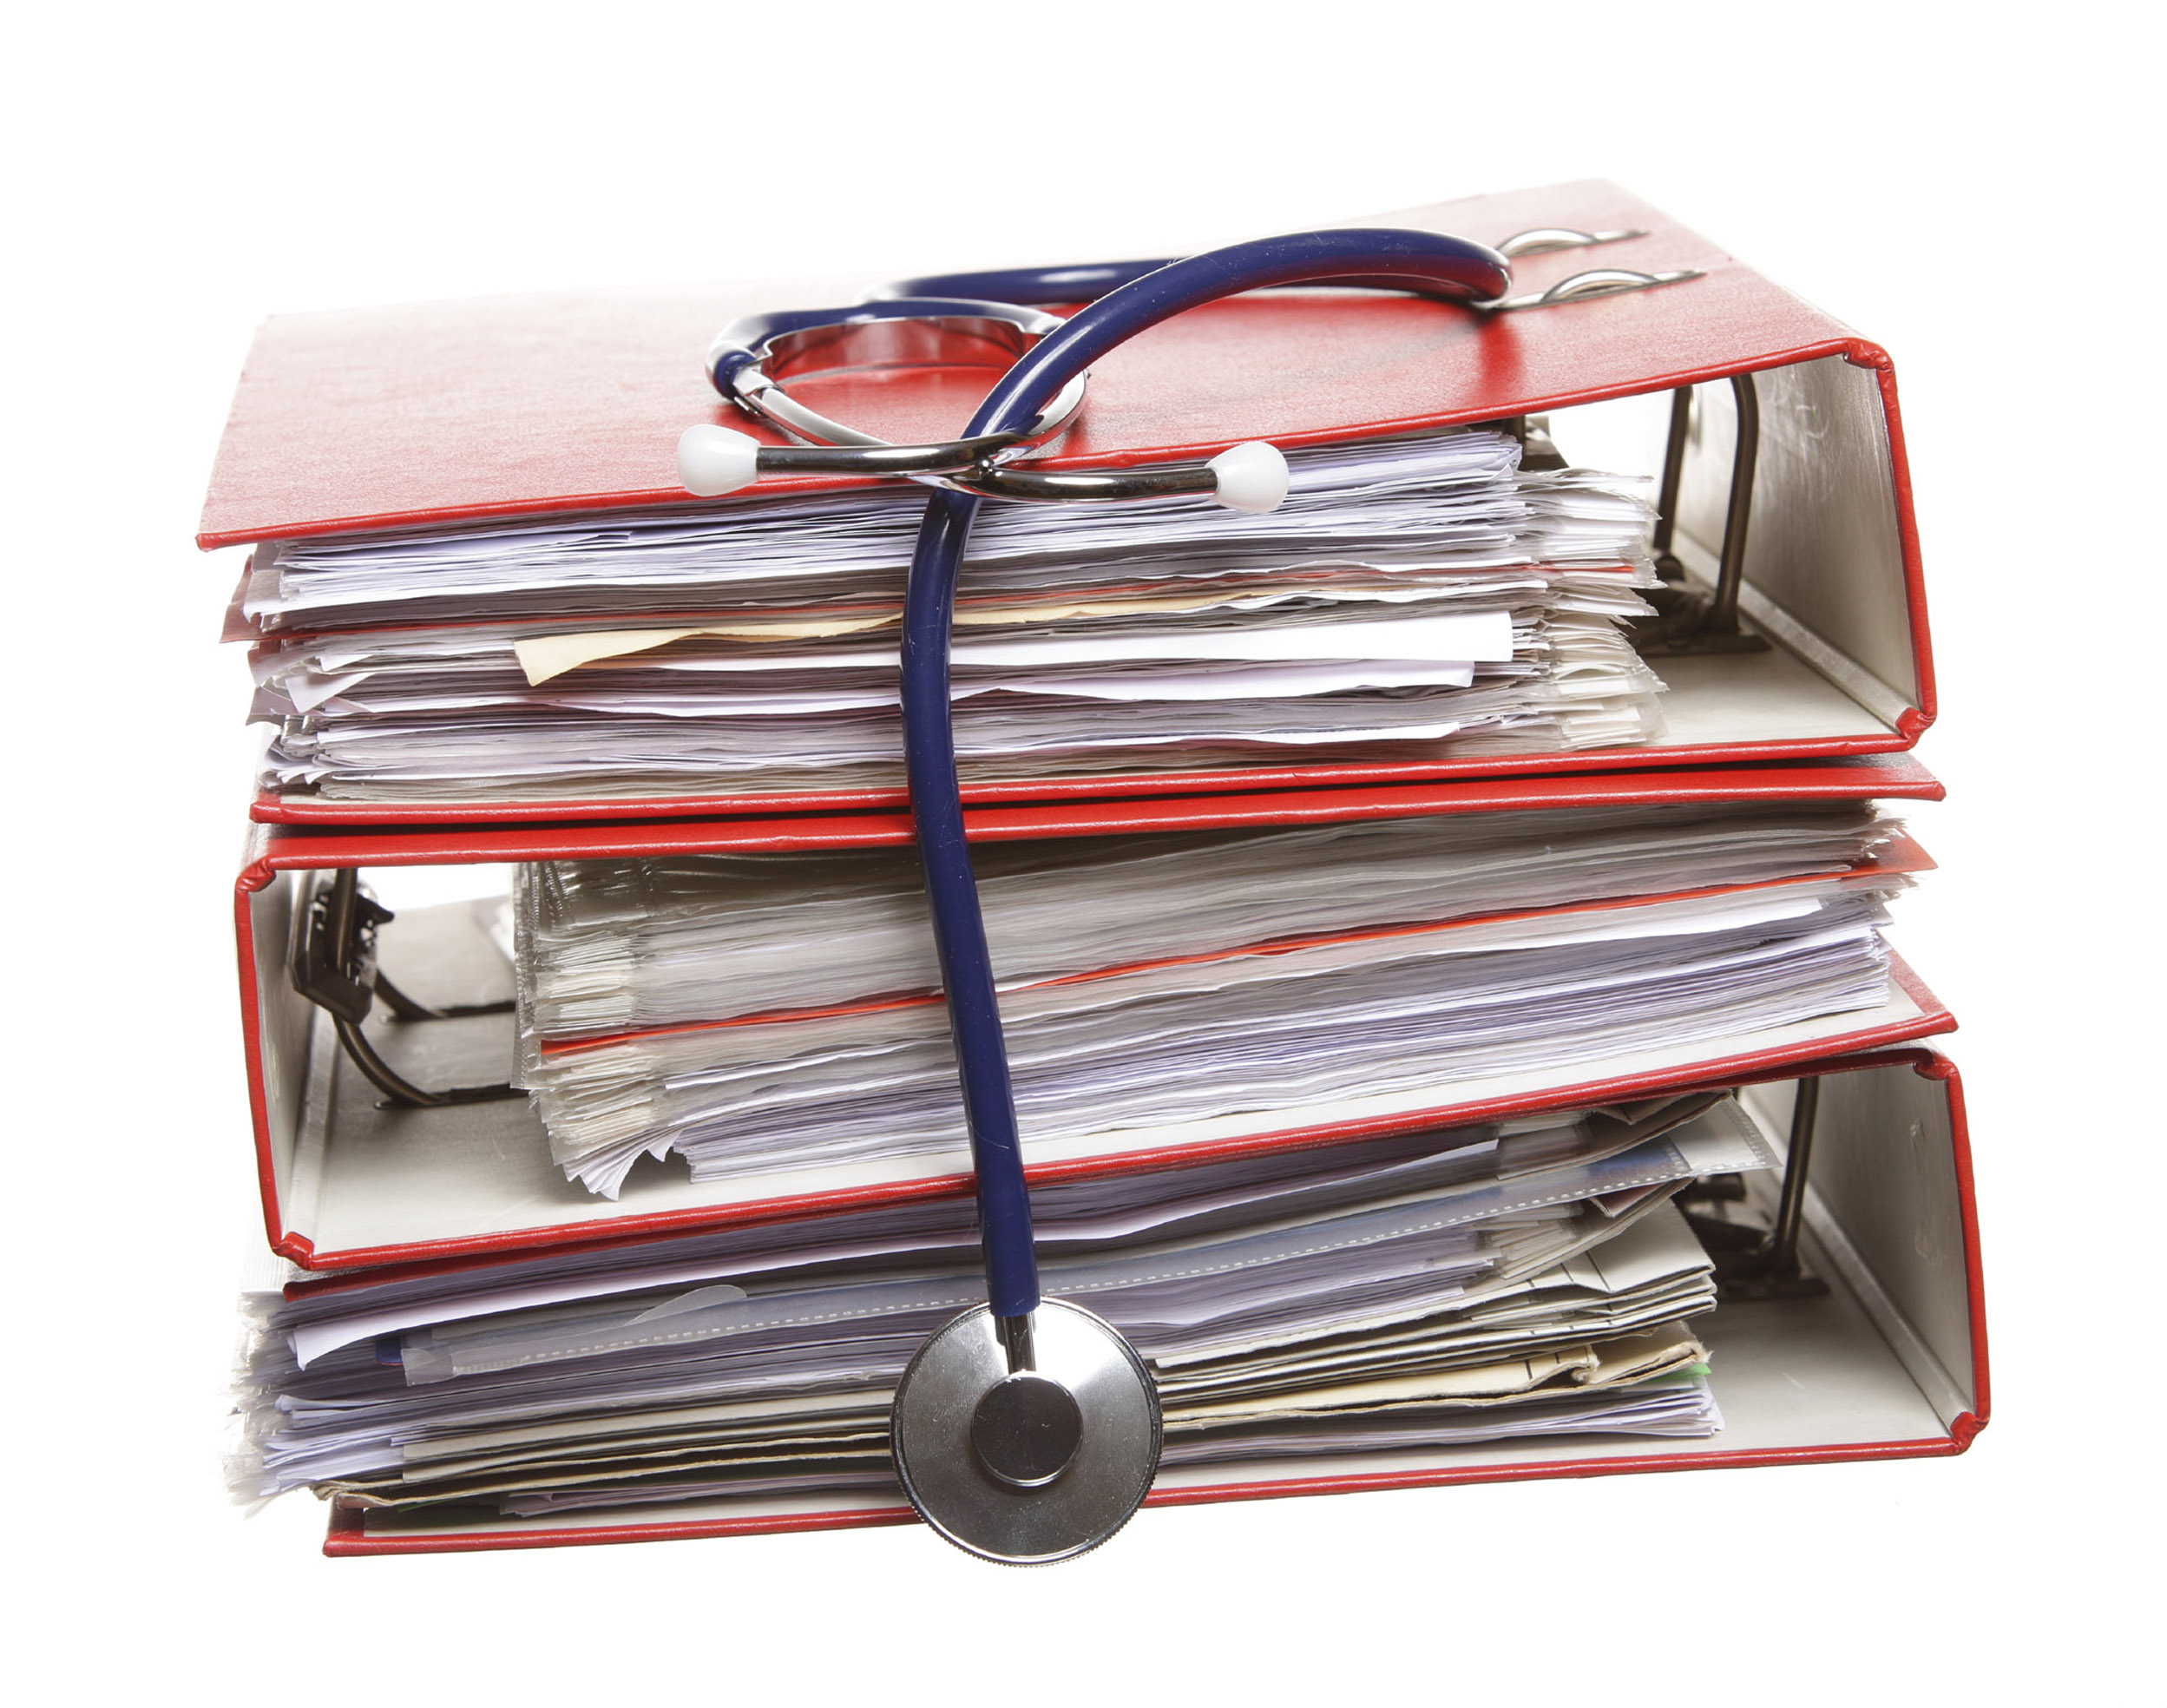 Overflowing binder of Doctors notes